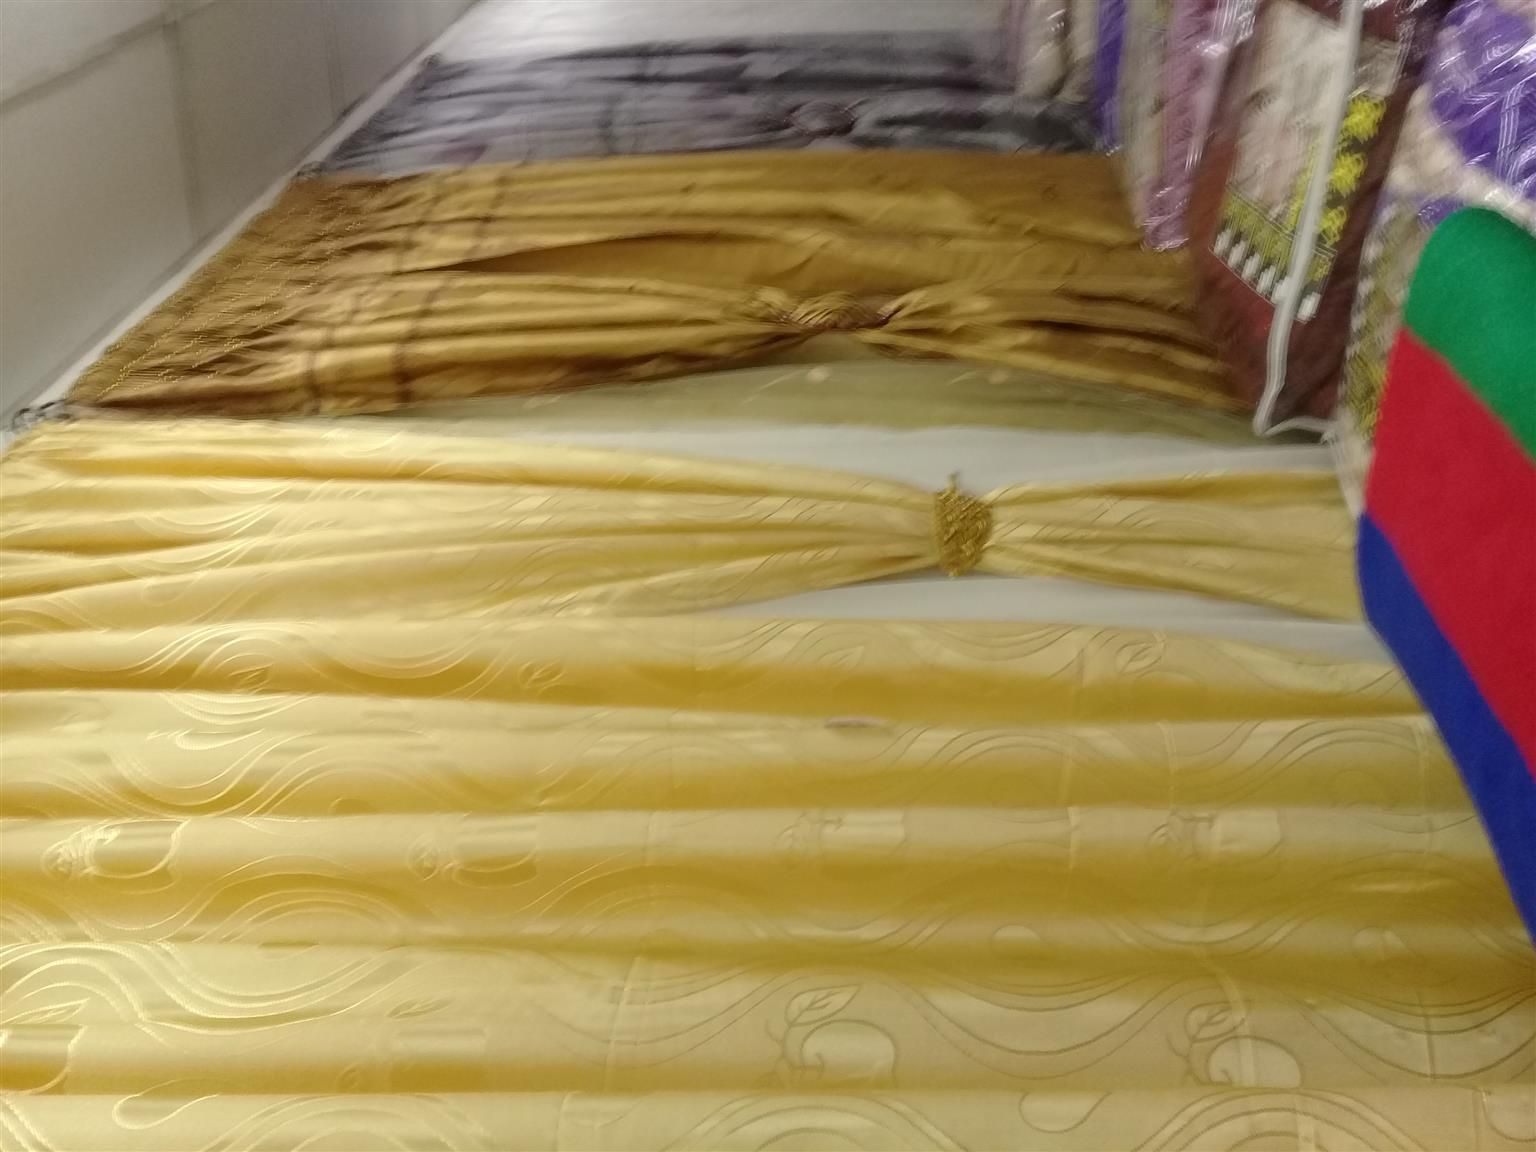 Bafana Bafana 29a 3rd street springs town cell 0839696735 or 0118152605 Retail and wholesale,Curtains,bedspread,comforters,blankets,sheets,Std pillows,curtain rails,mam dress, etc